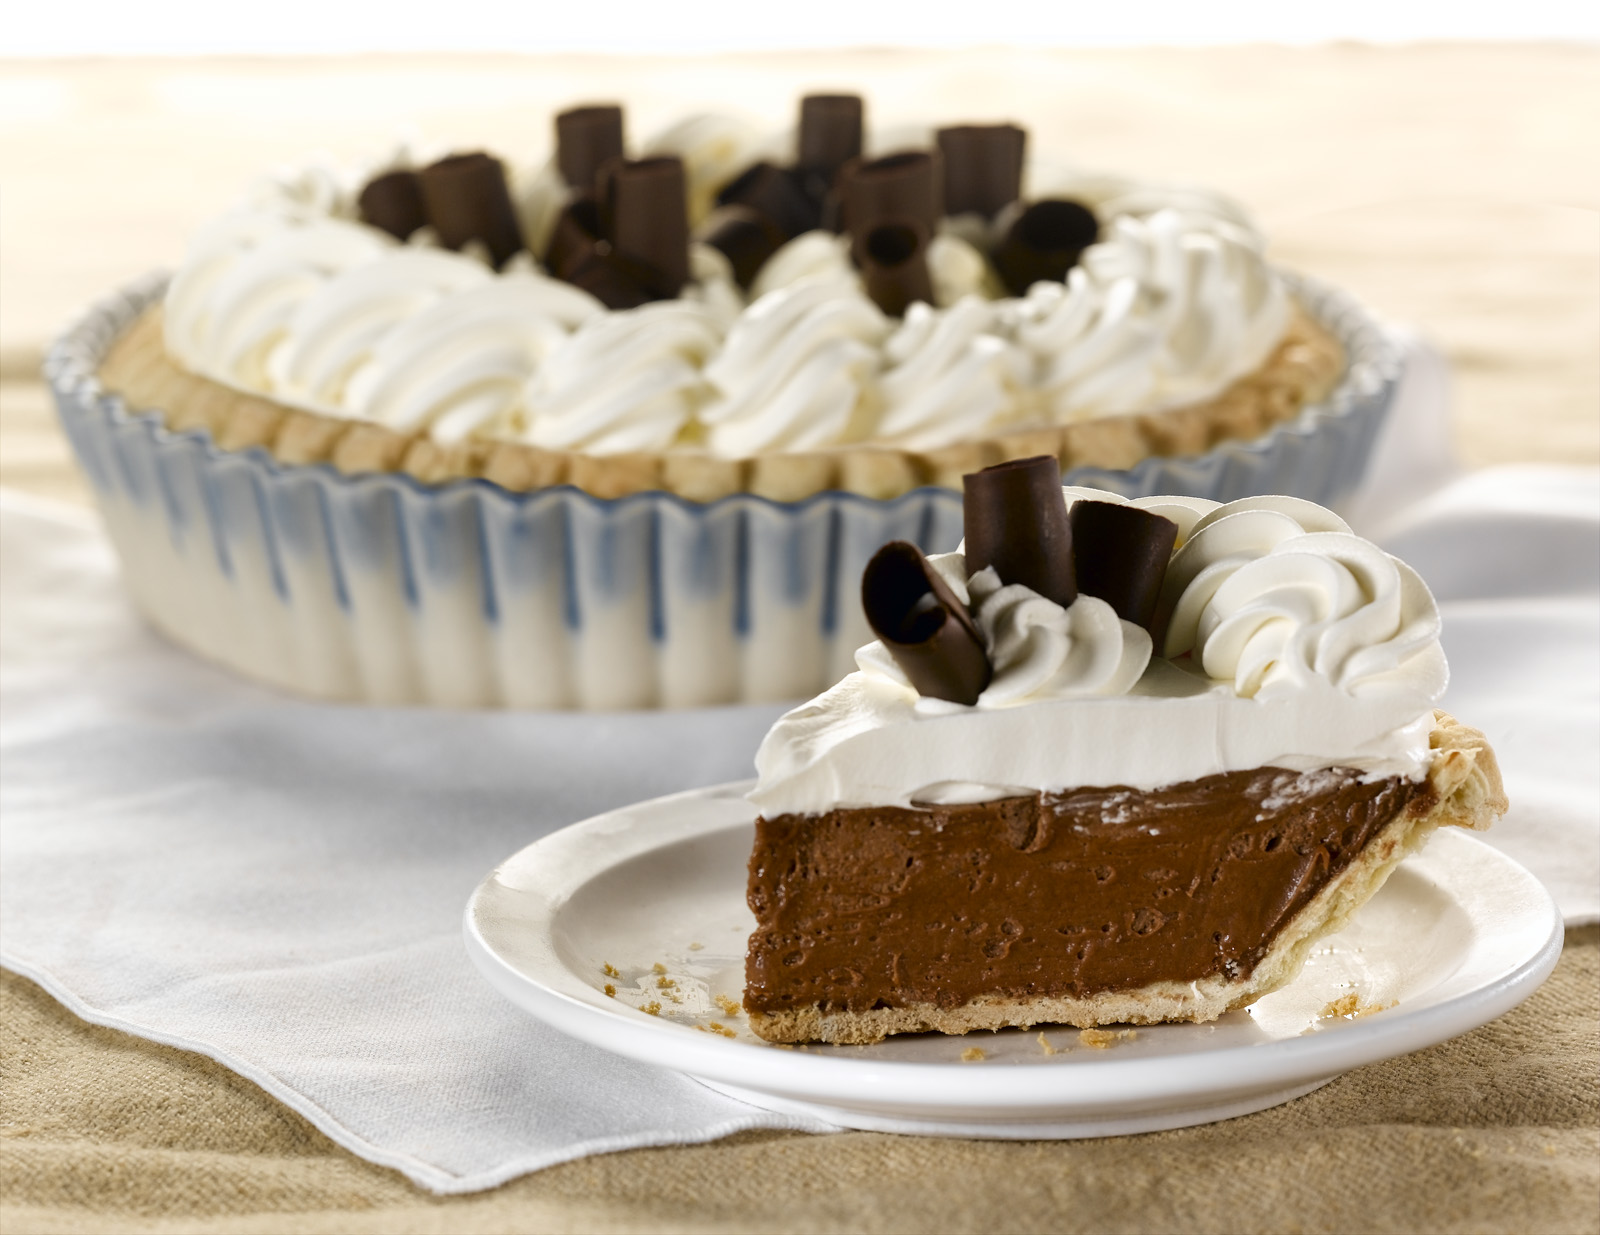 Whole French silk tart and slice